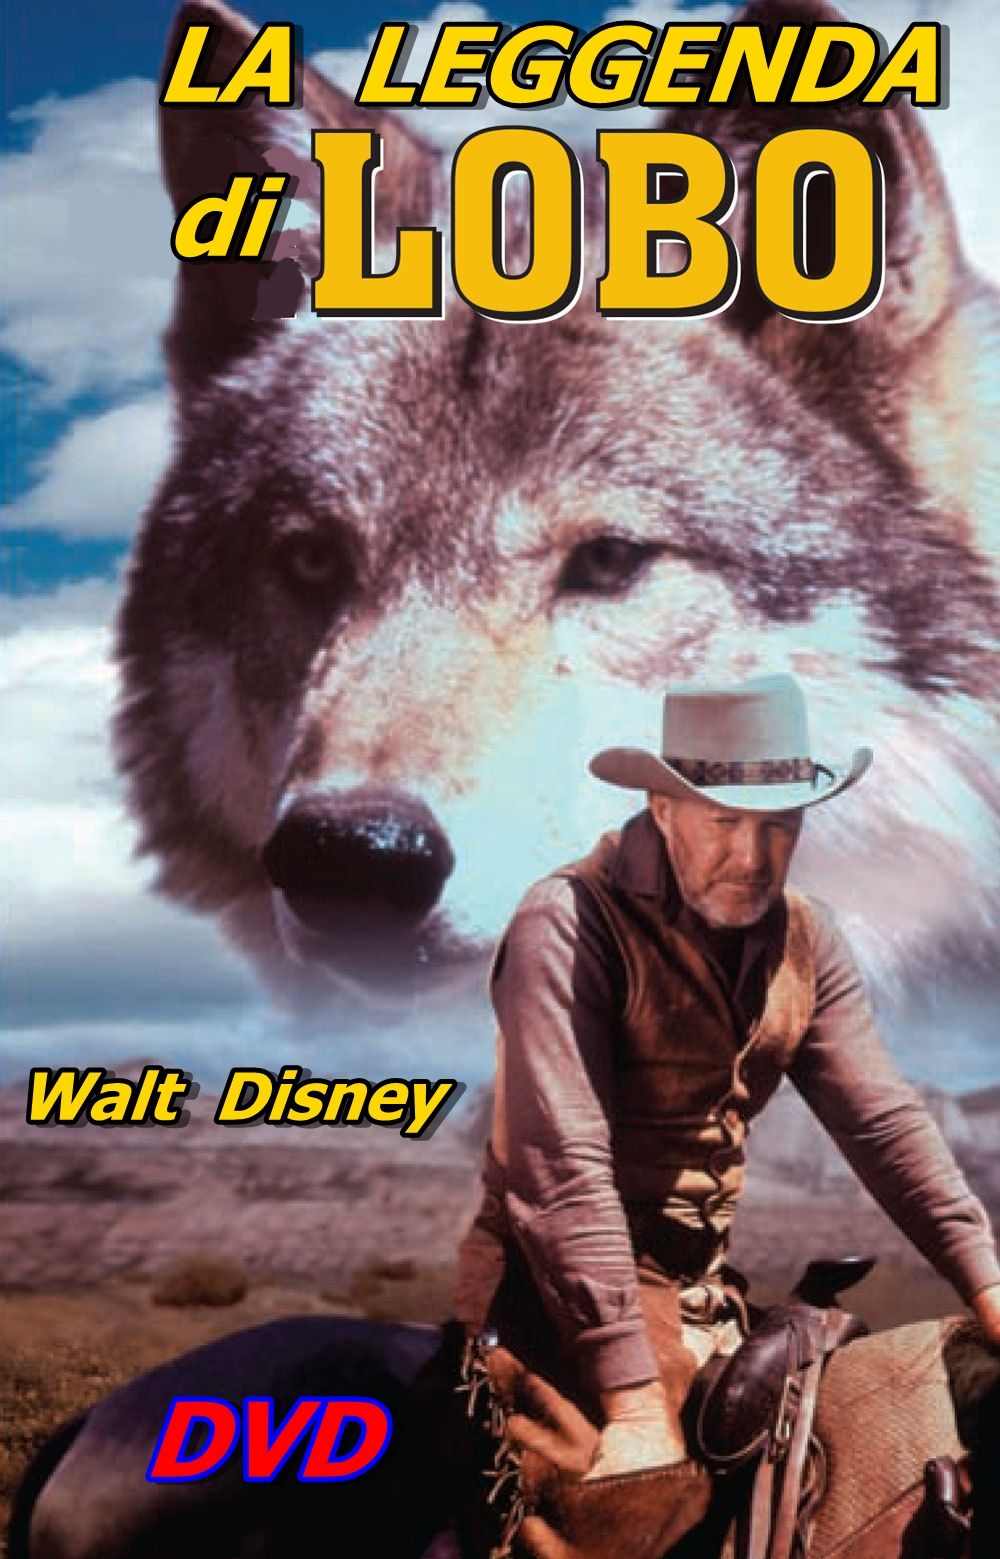 LA_LEGGENDA_DI_LOBO_DVD_1962_Walt_Disney_James_Algar